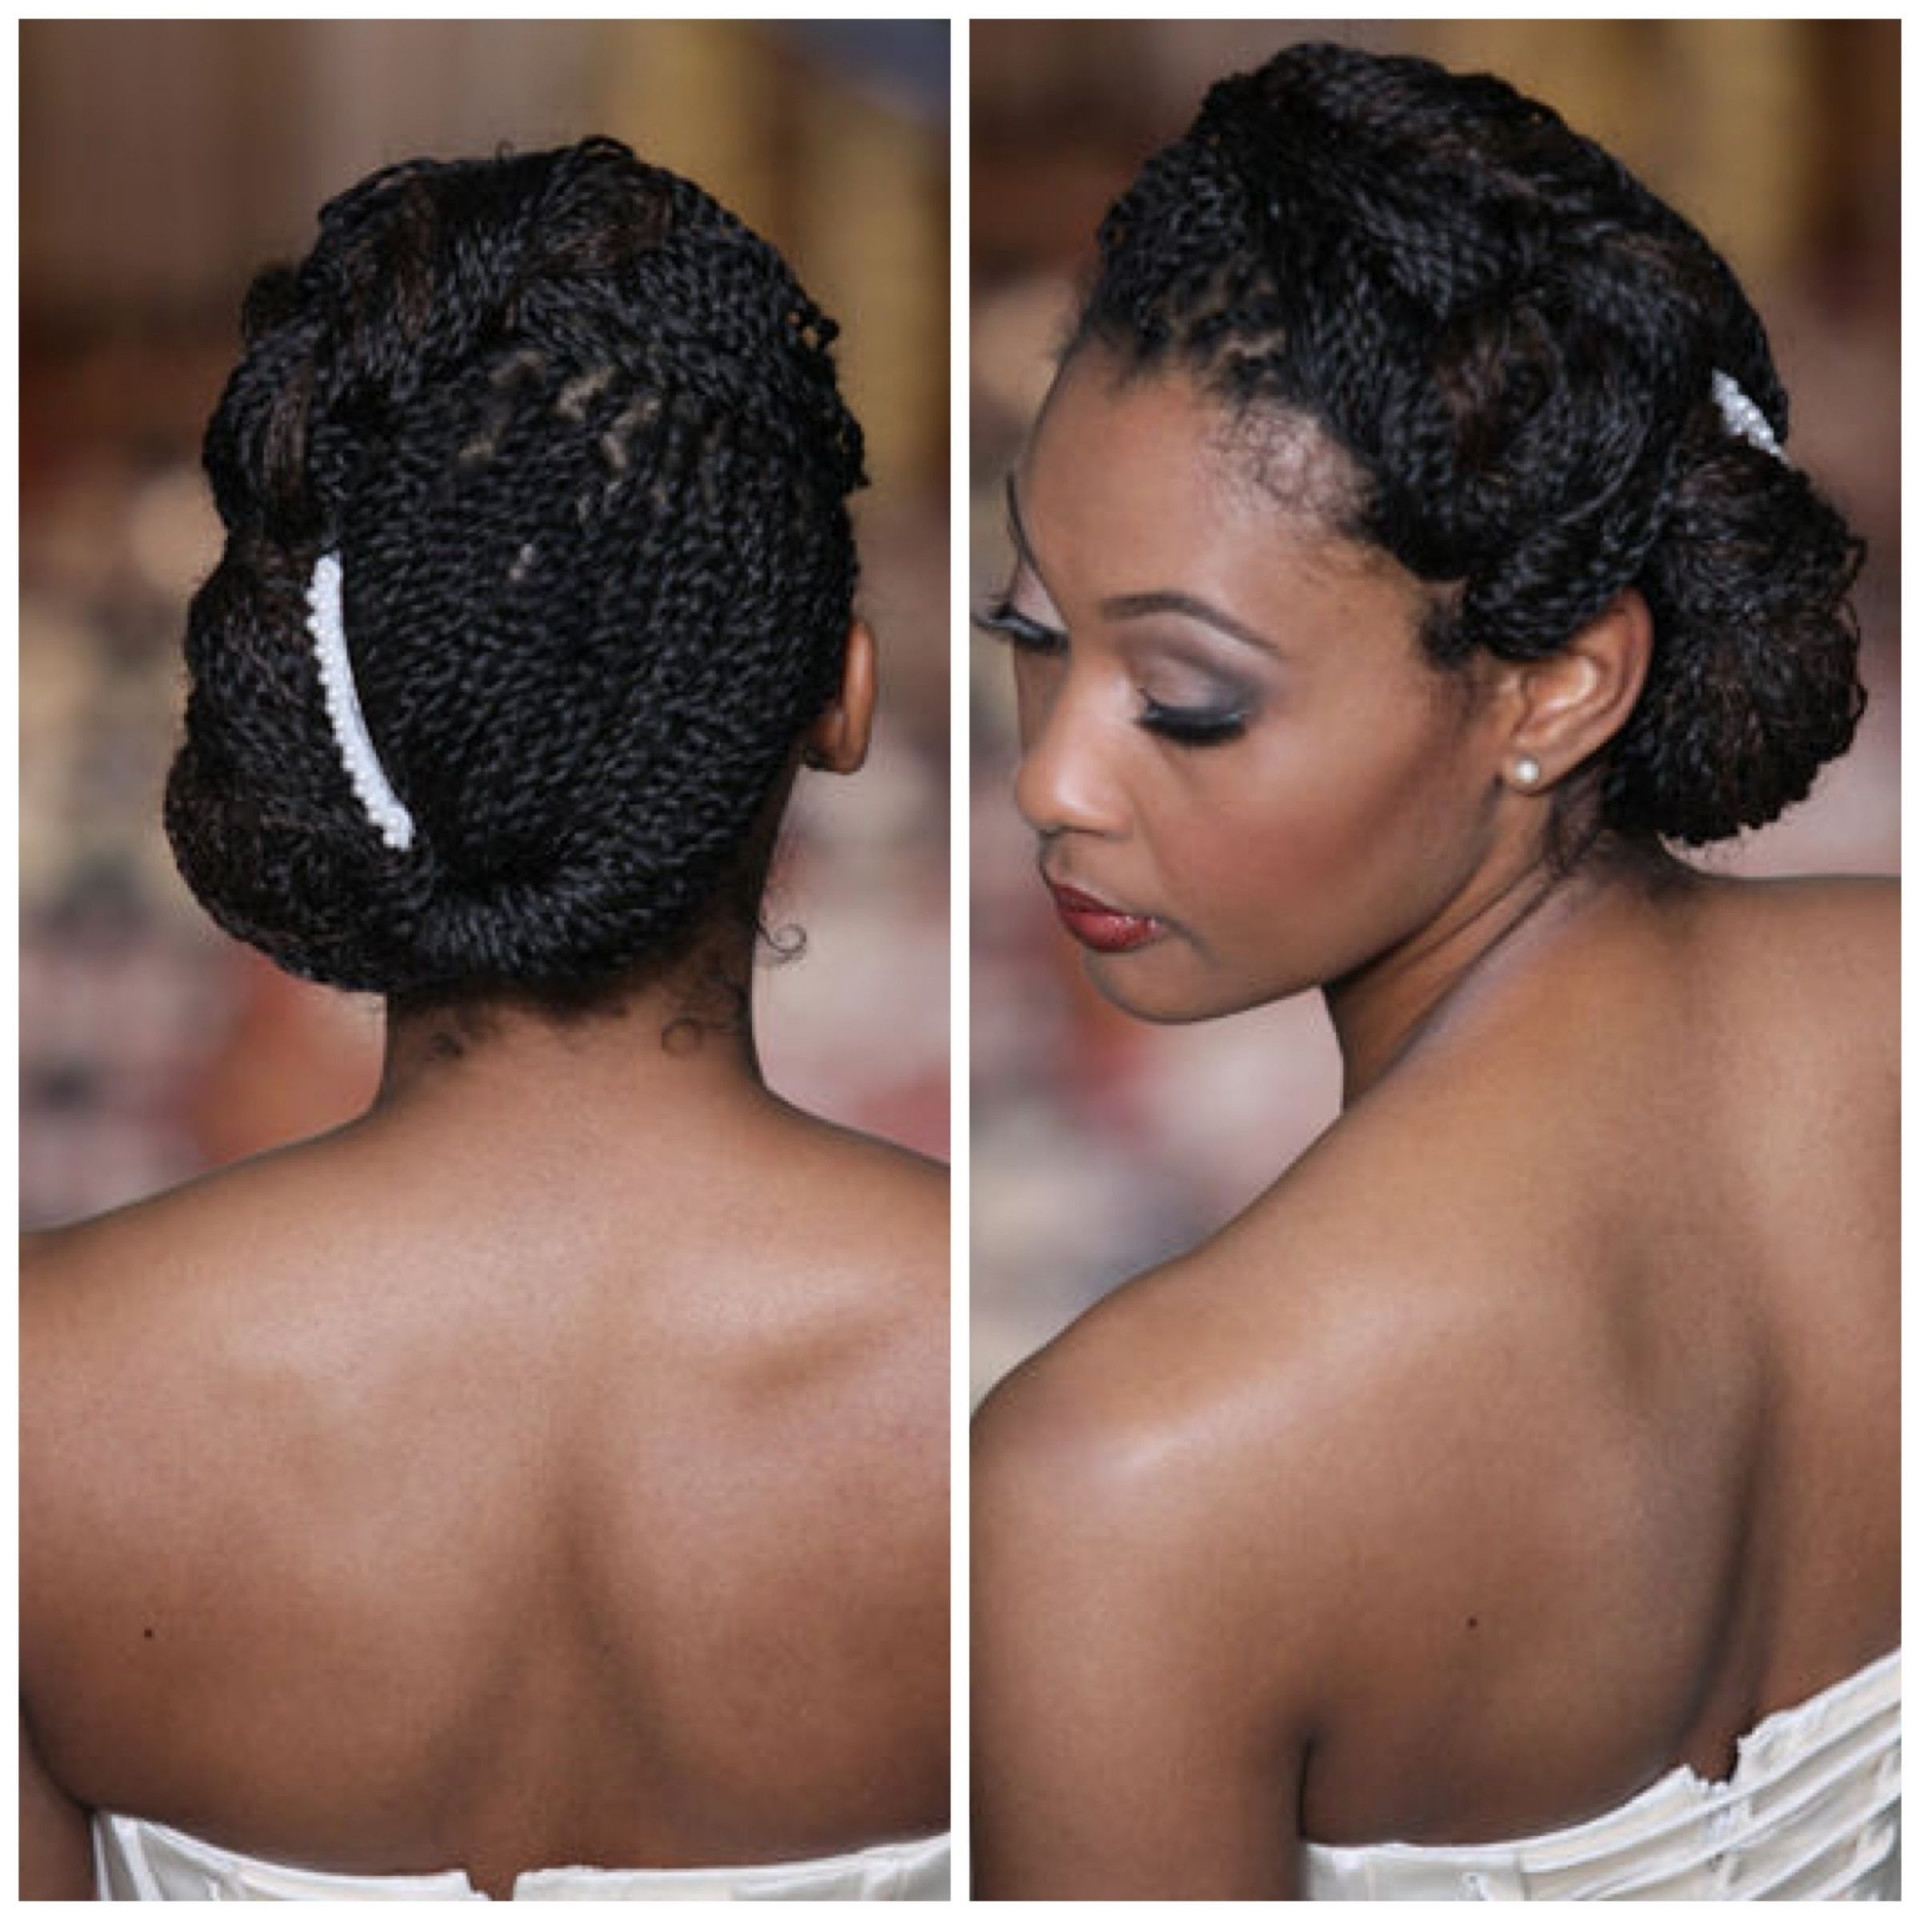 African American Wedding Hairstyles And Bridal 2018 Throughout Fashionable Wedding Hairstyles For African American Brides (Gallery 5 of 15)